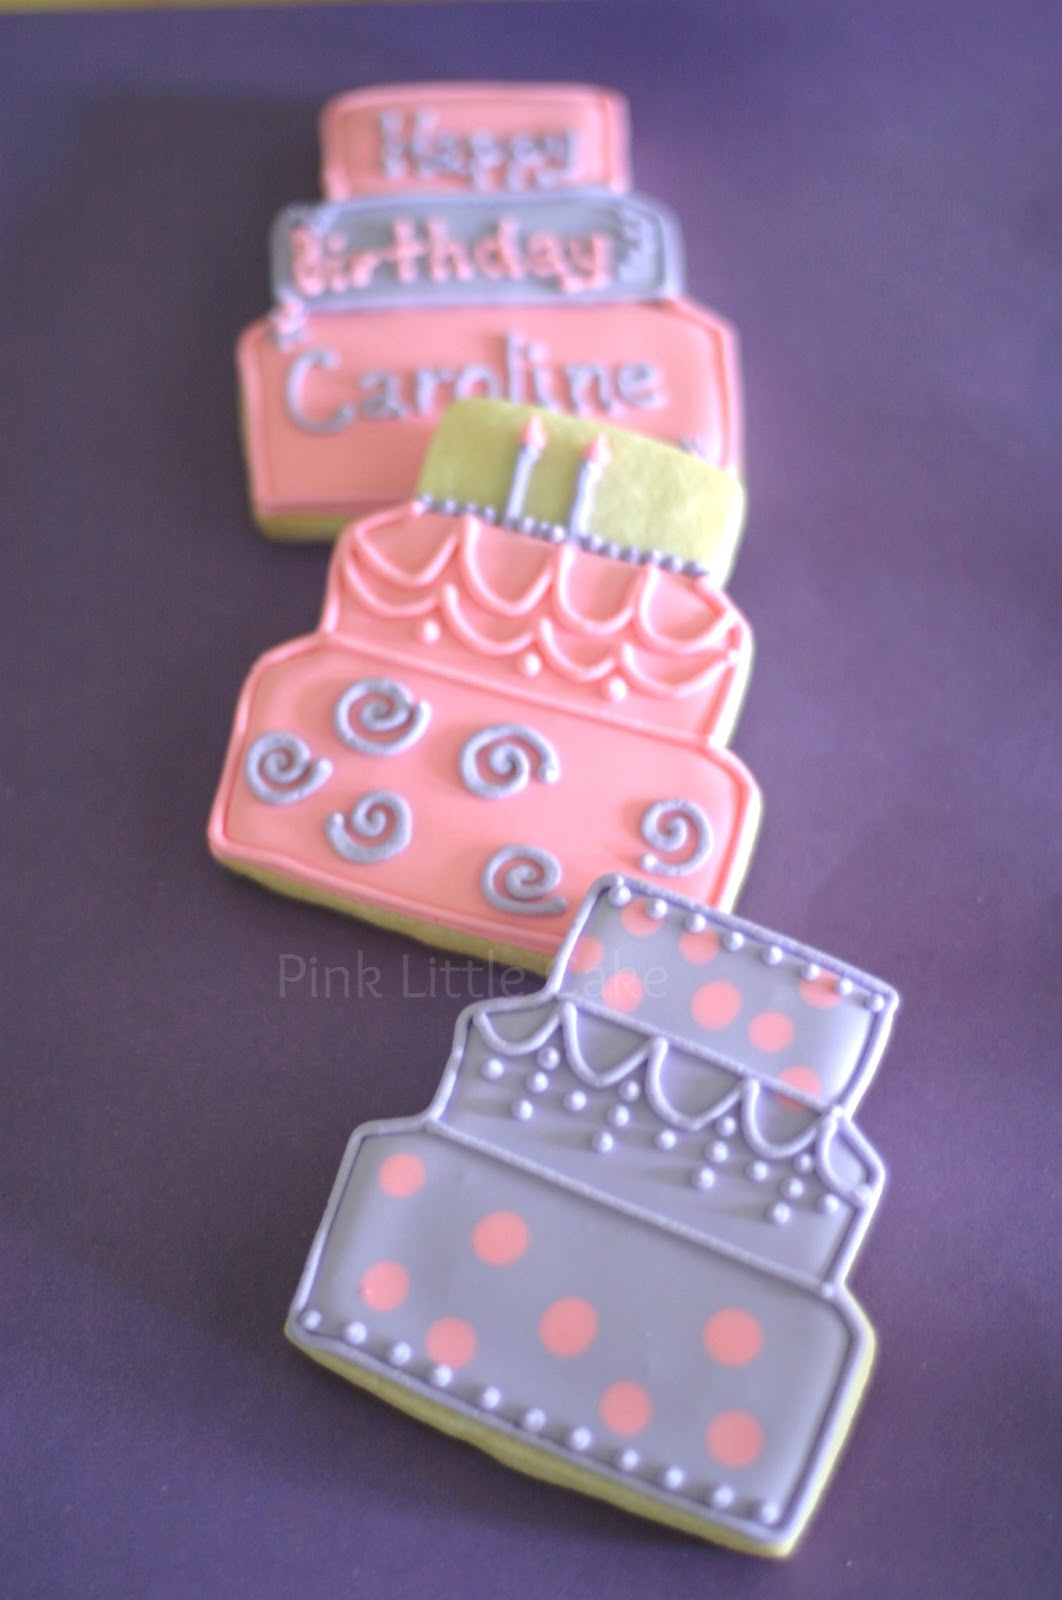 Pink Little Cake Pink And Lavander Birthday Cookies